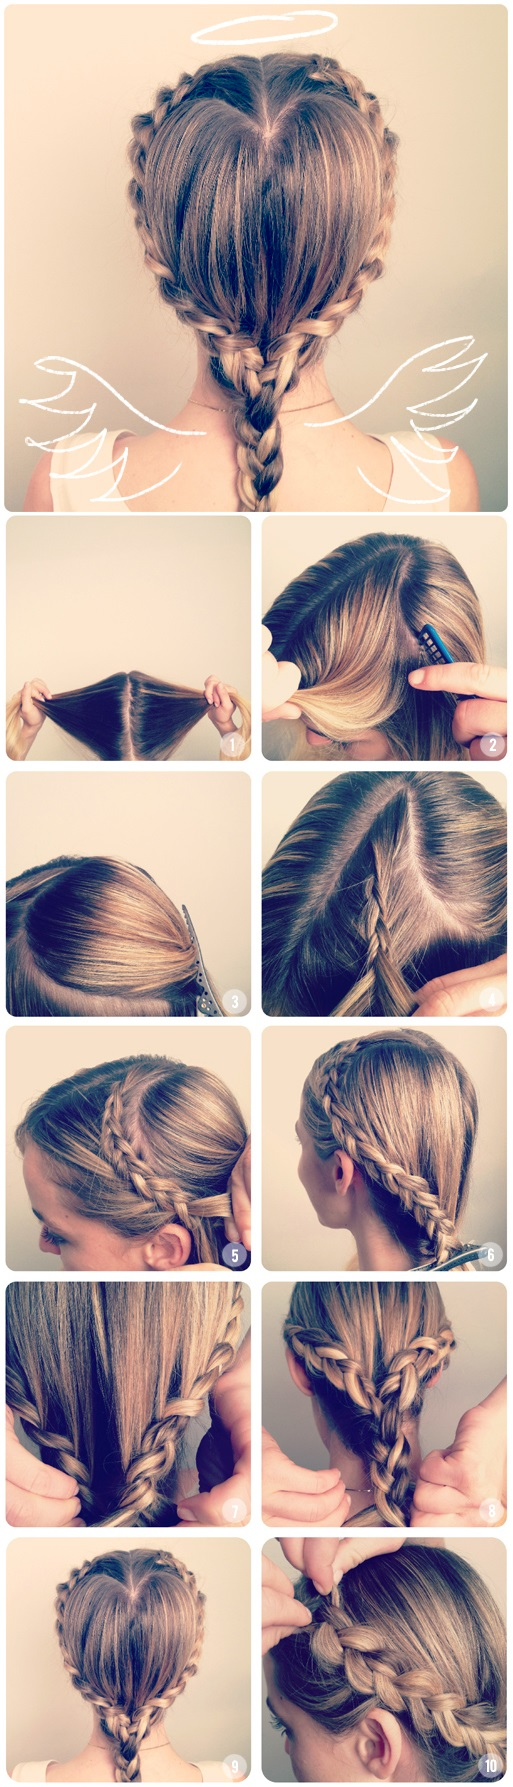 Heart Shaped Princess Braiding - Hairstyle Tutorial